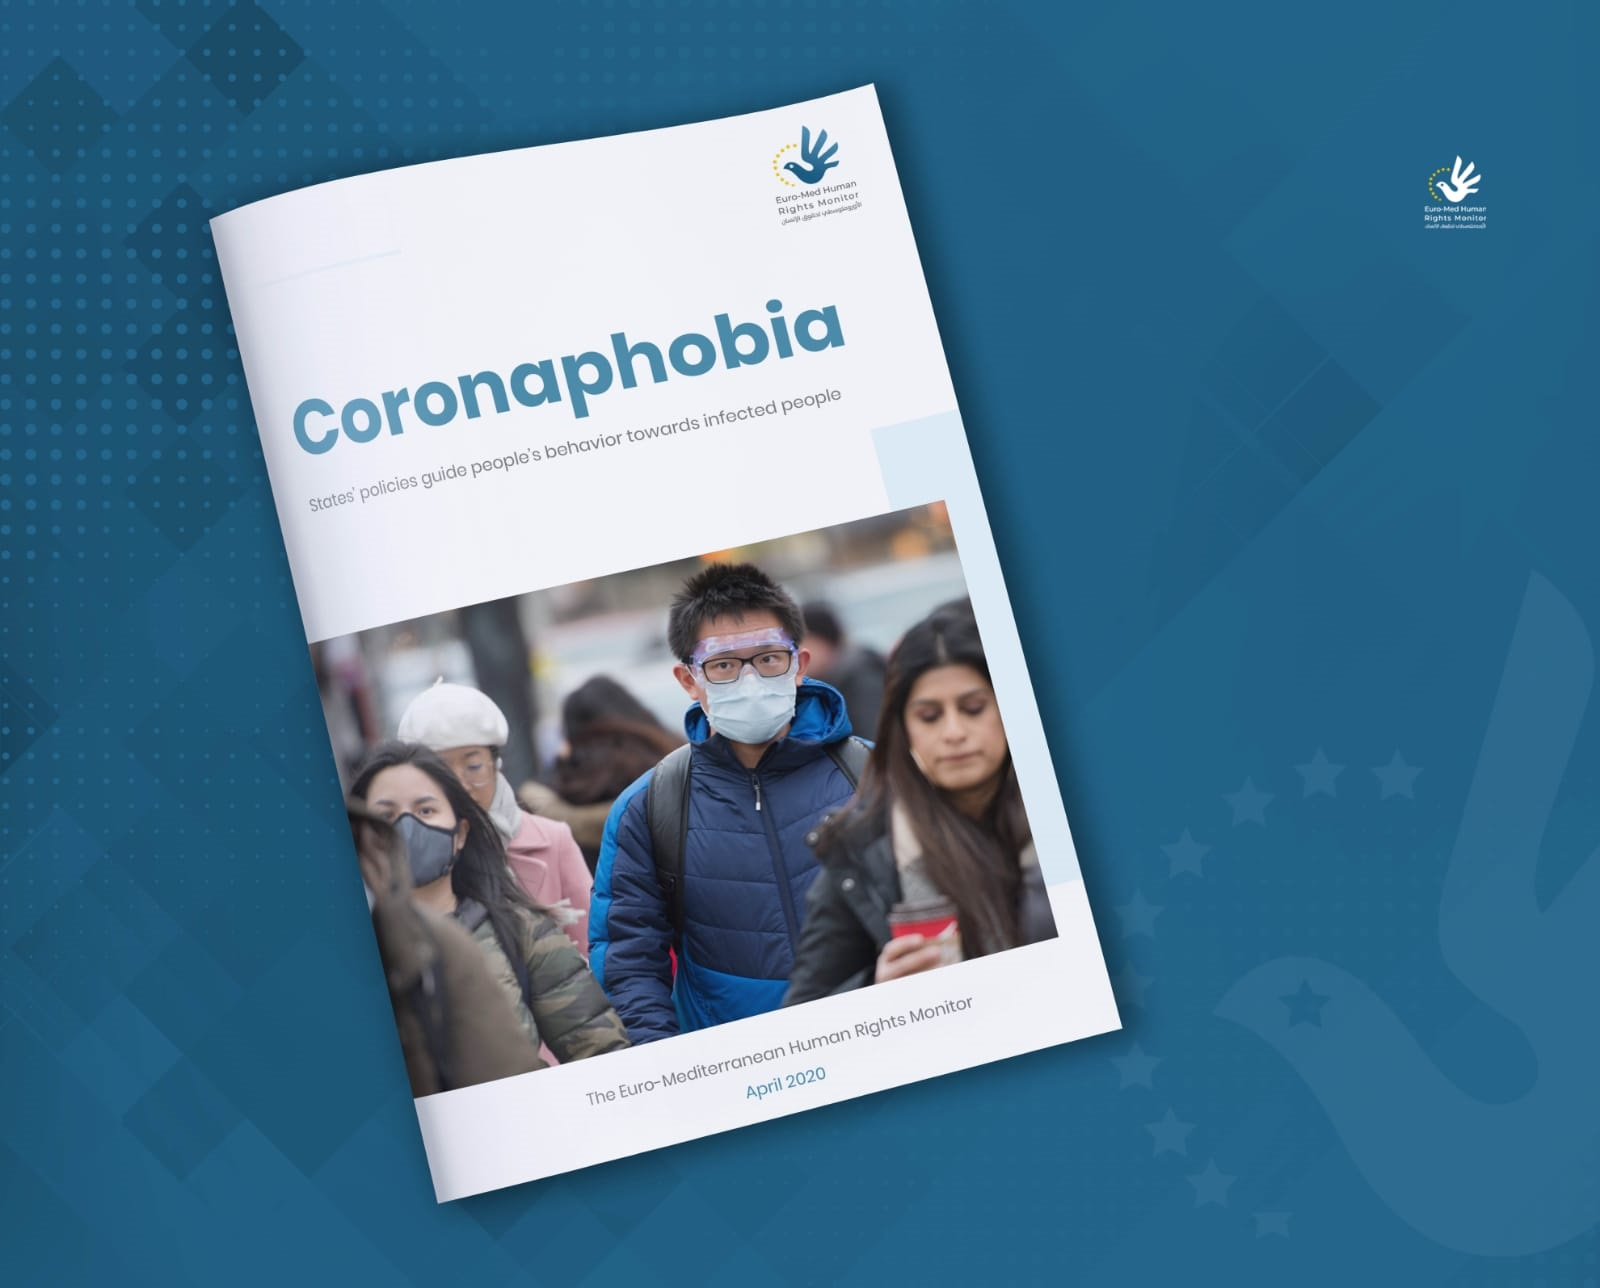 Report: Xenophobic bullying rages during with coronavirus pandemic